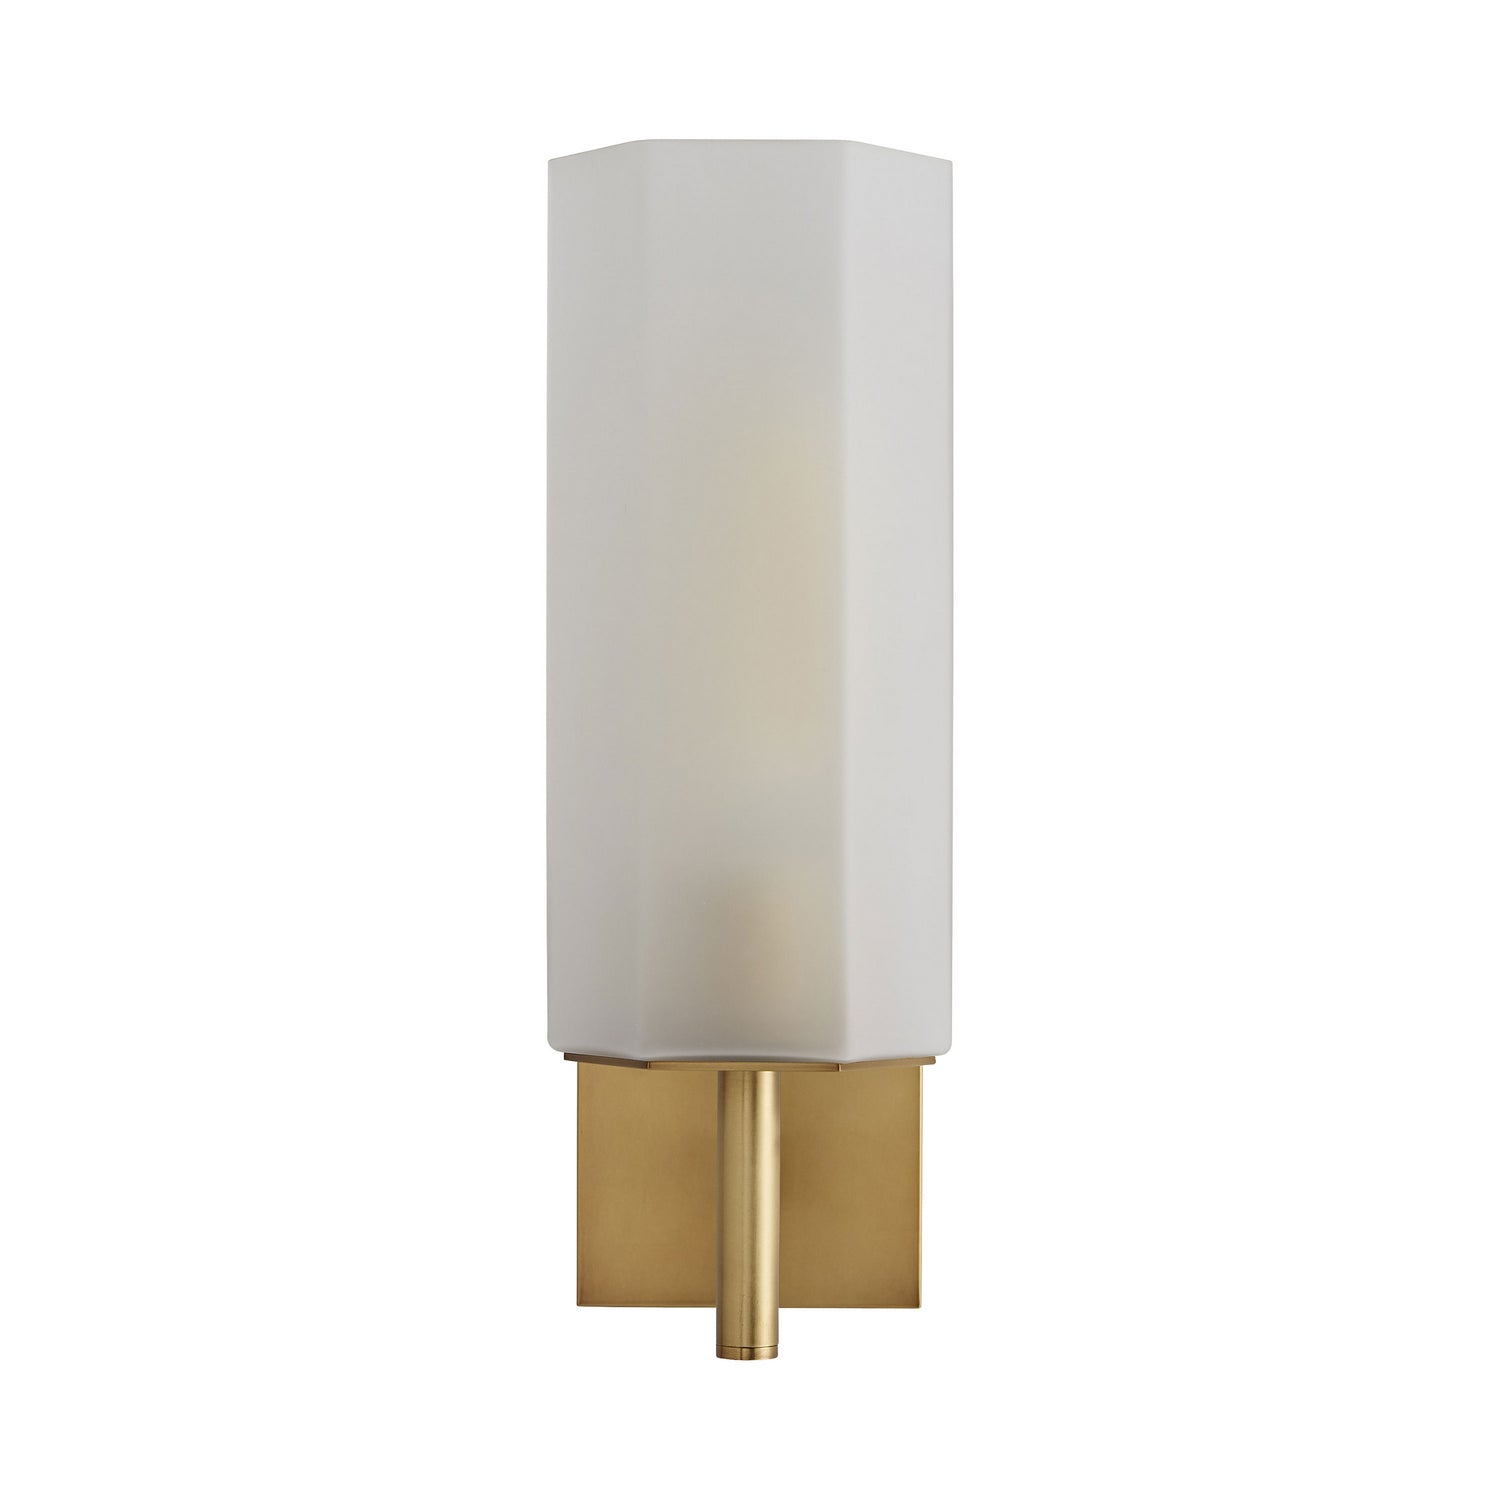 Arteriors - One Light Wall Sconce - Soloman - Frosted